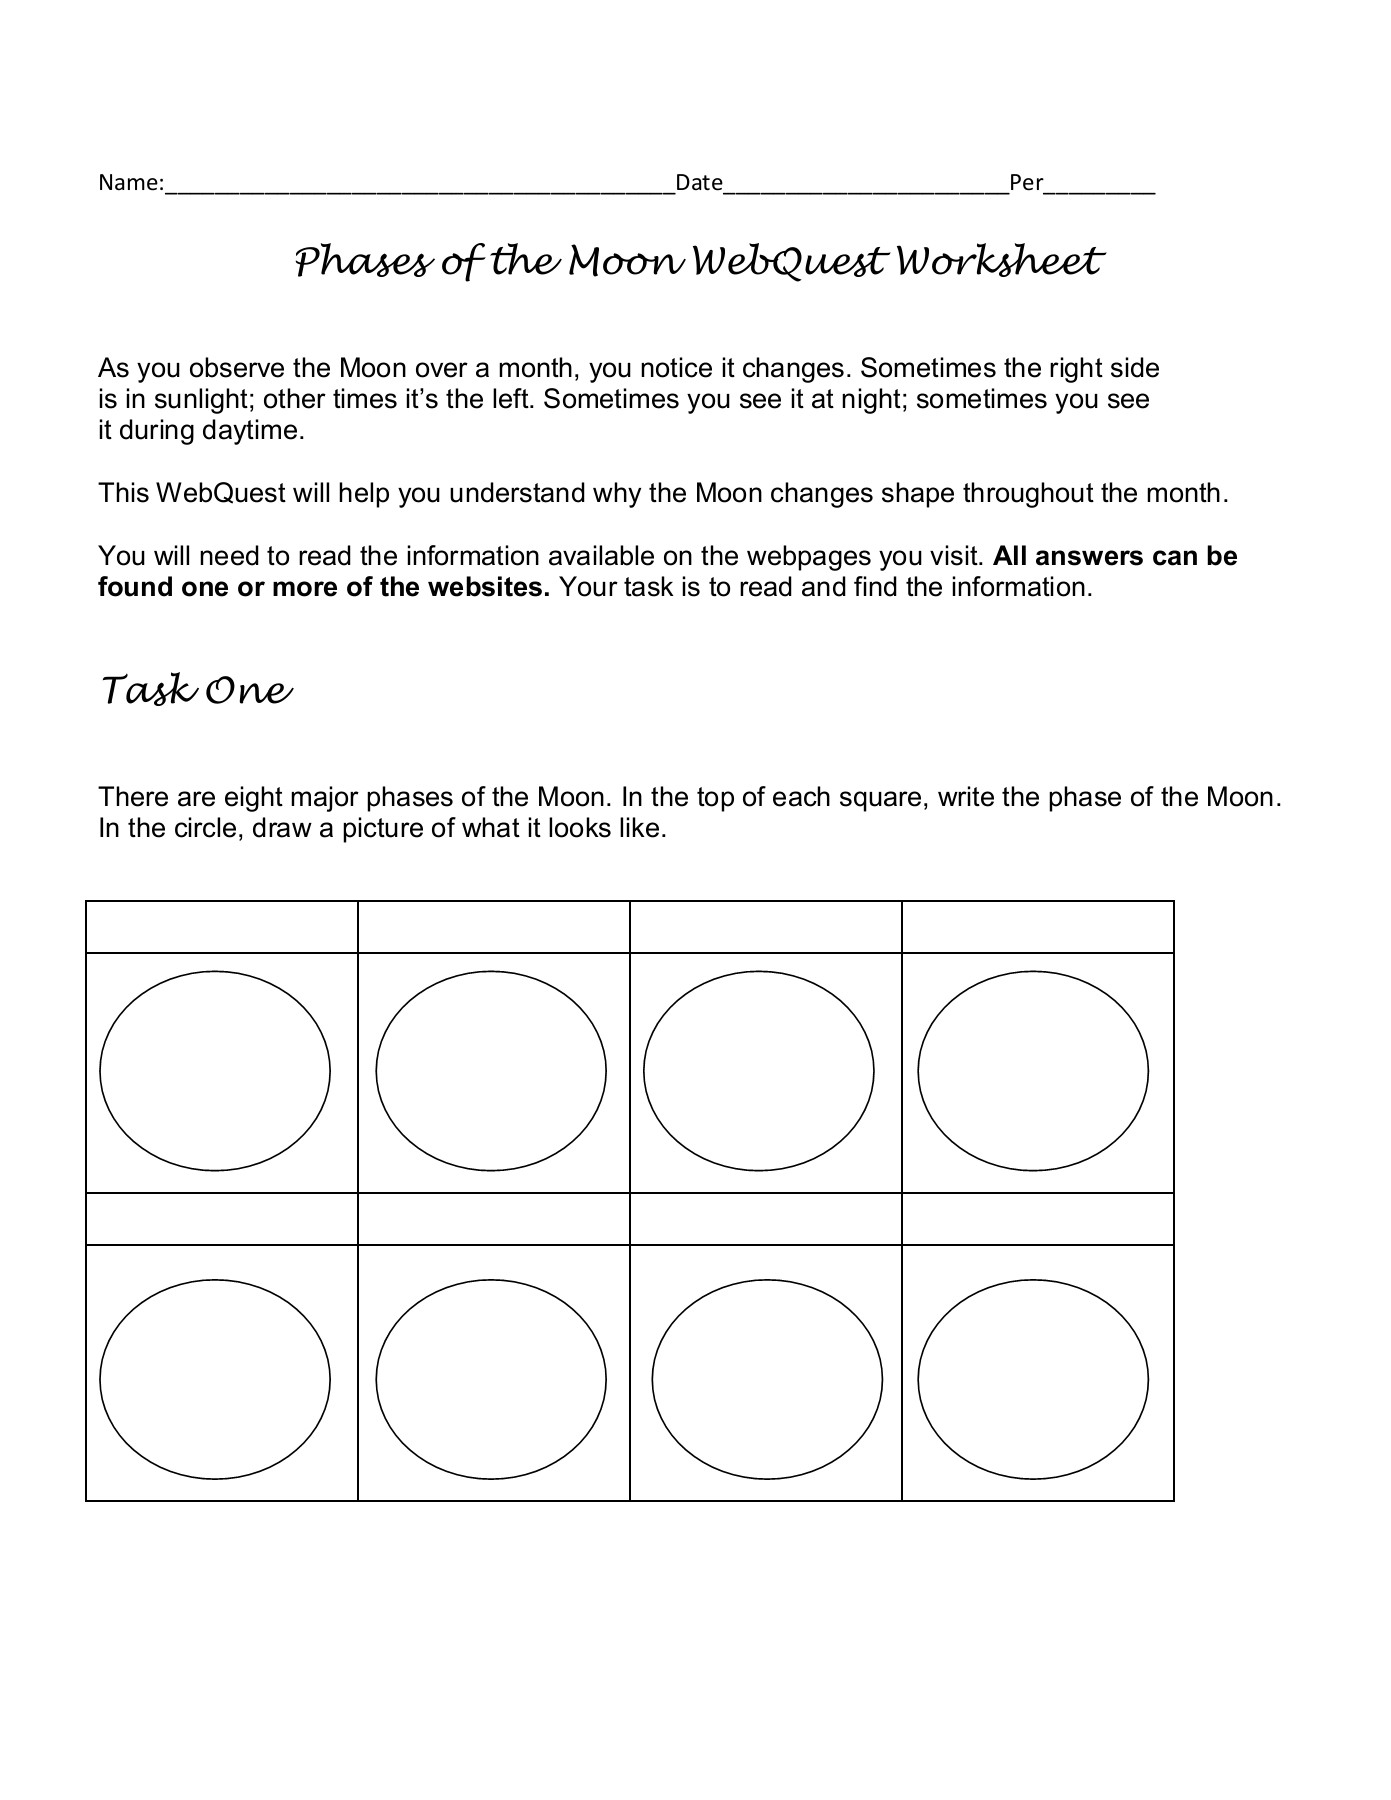 Phases Of The Moon Webquest Worksheet Answers